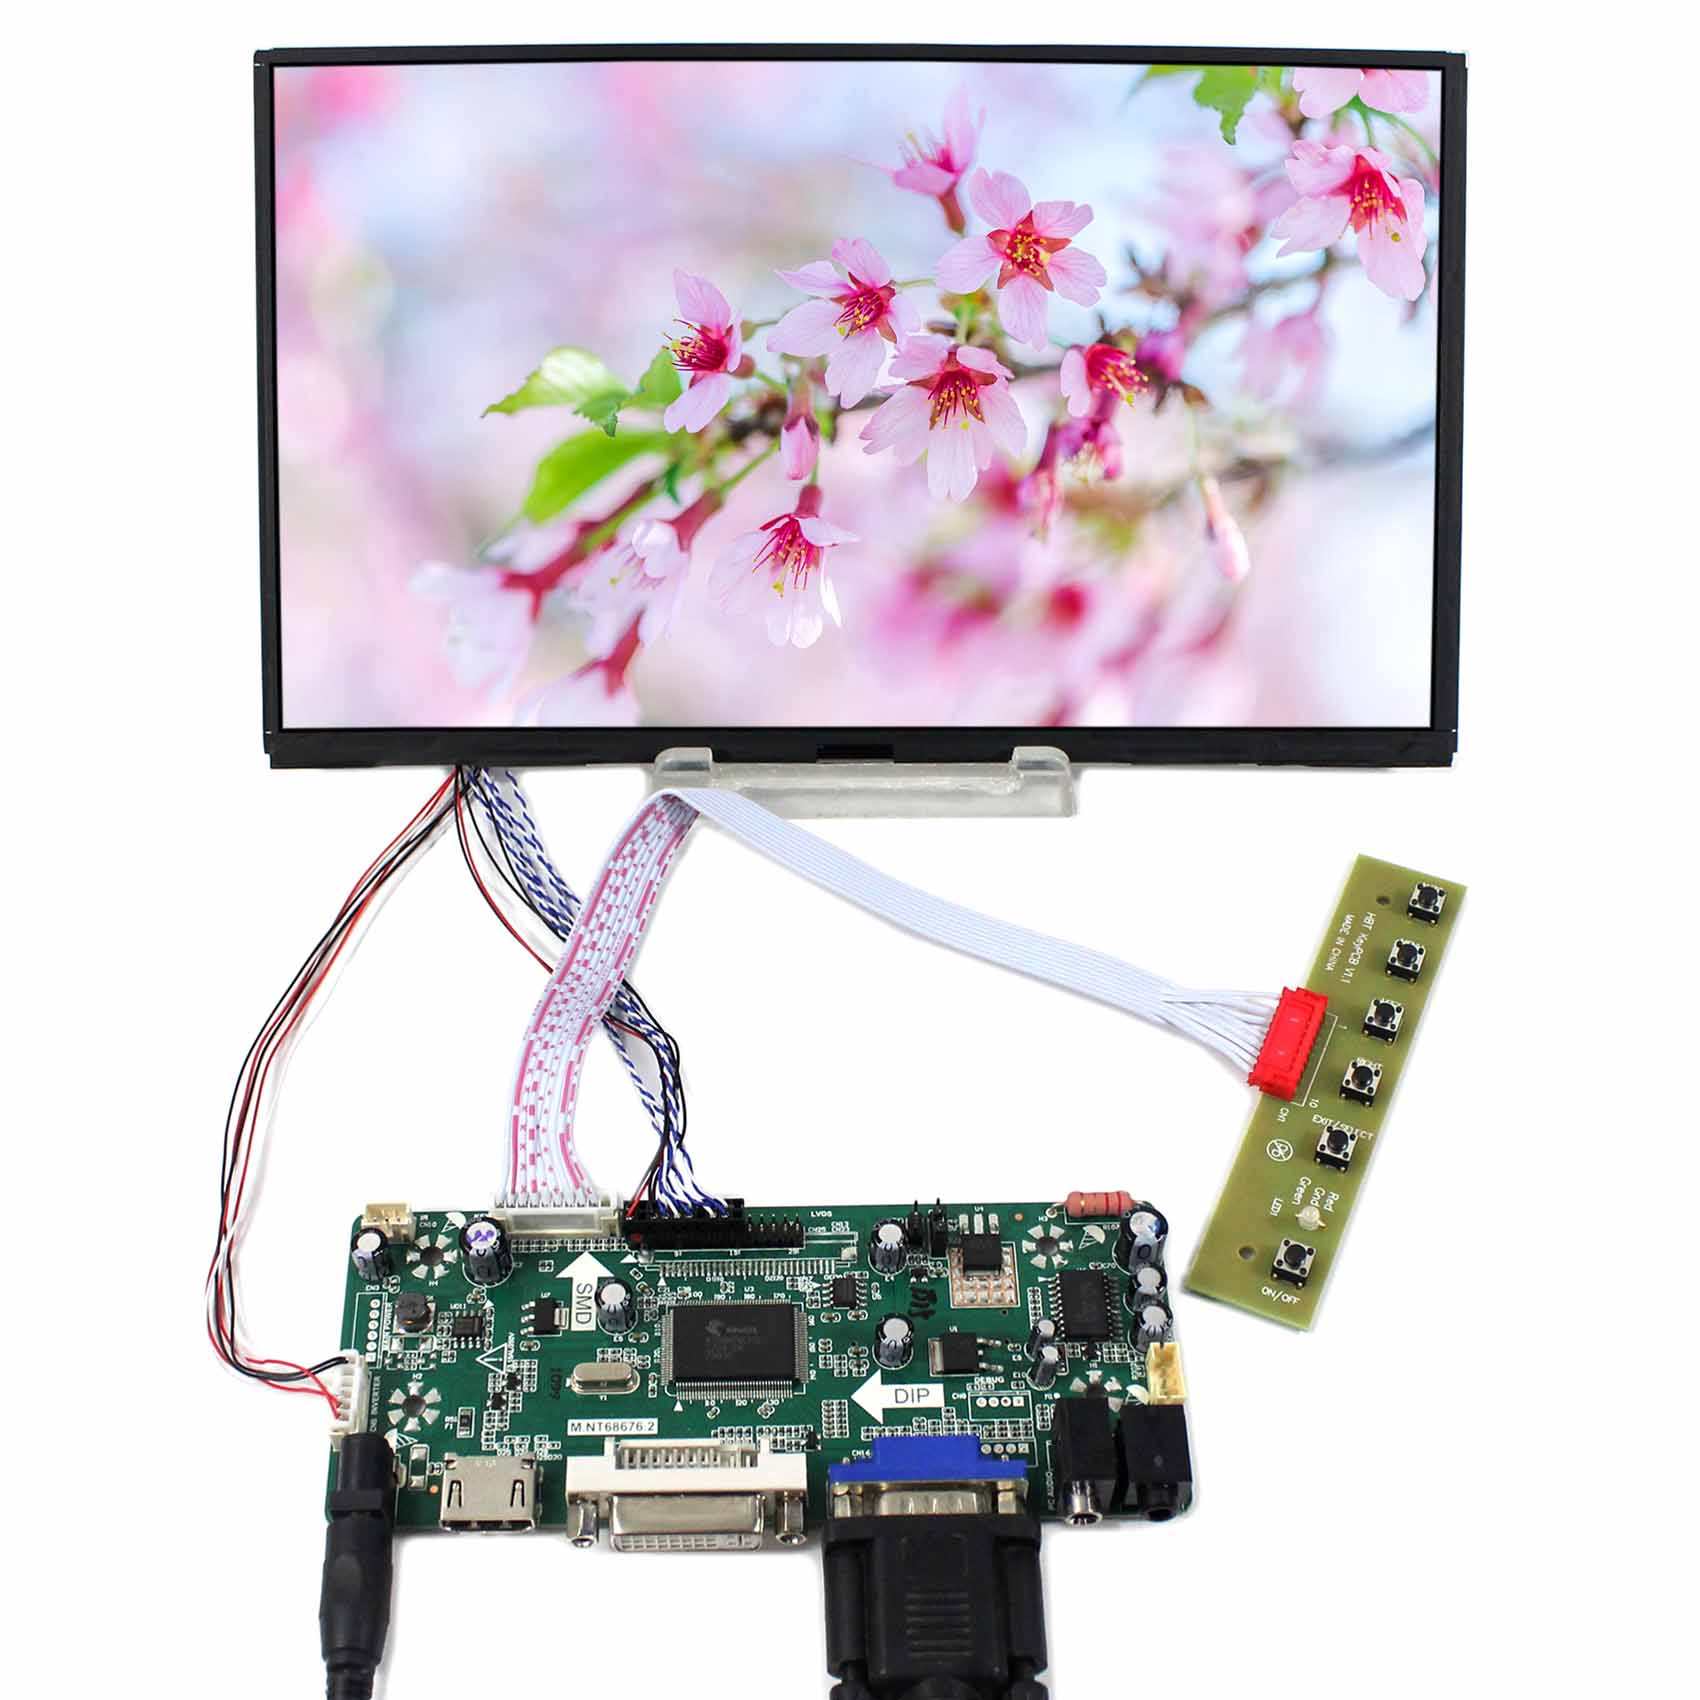 HDMI DVI VGA LCD Controller Board 10.1inch B101XAN01 1366x768 IPS LCD Screen vga hdmi lcd edp controller board led diy kit for lp116wh6 spa1 lp116wh6 spa2 11 6 inch edp 30 pins 1lane 1366x768 wled ips tft